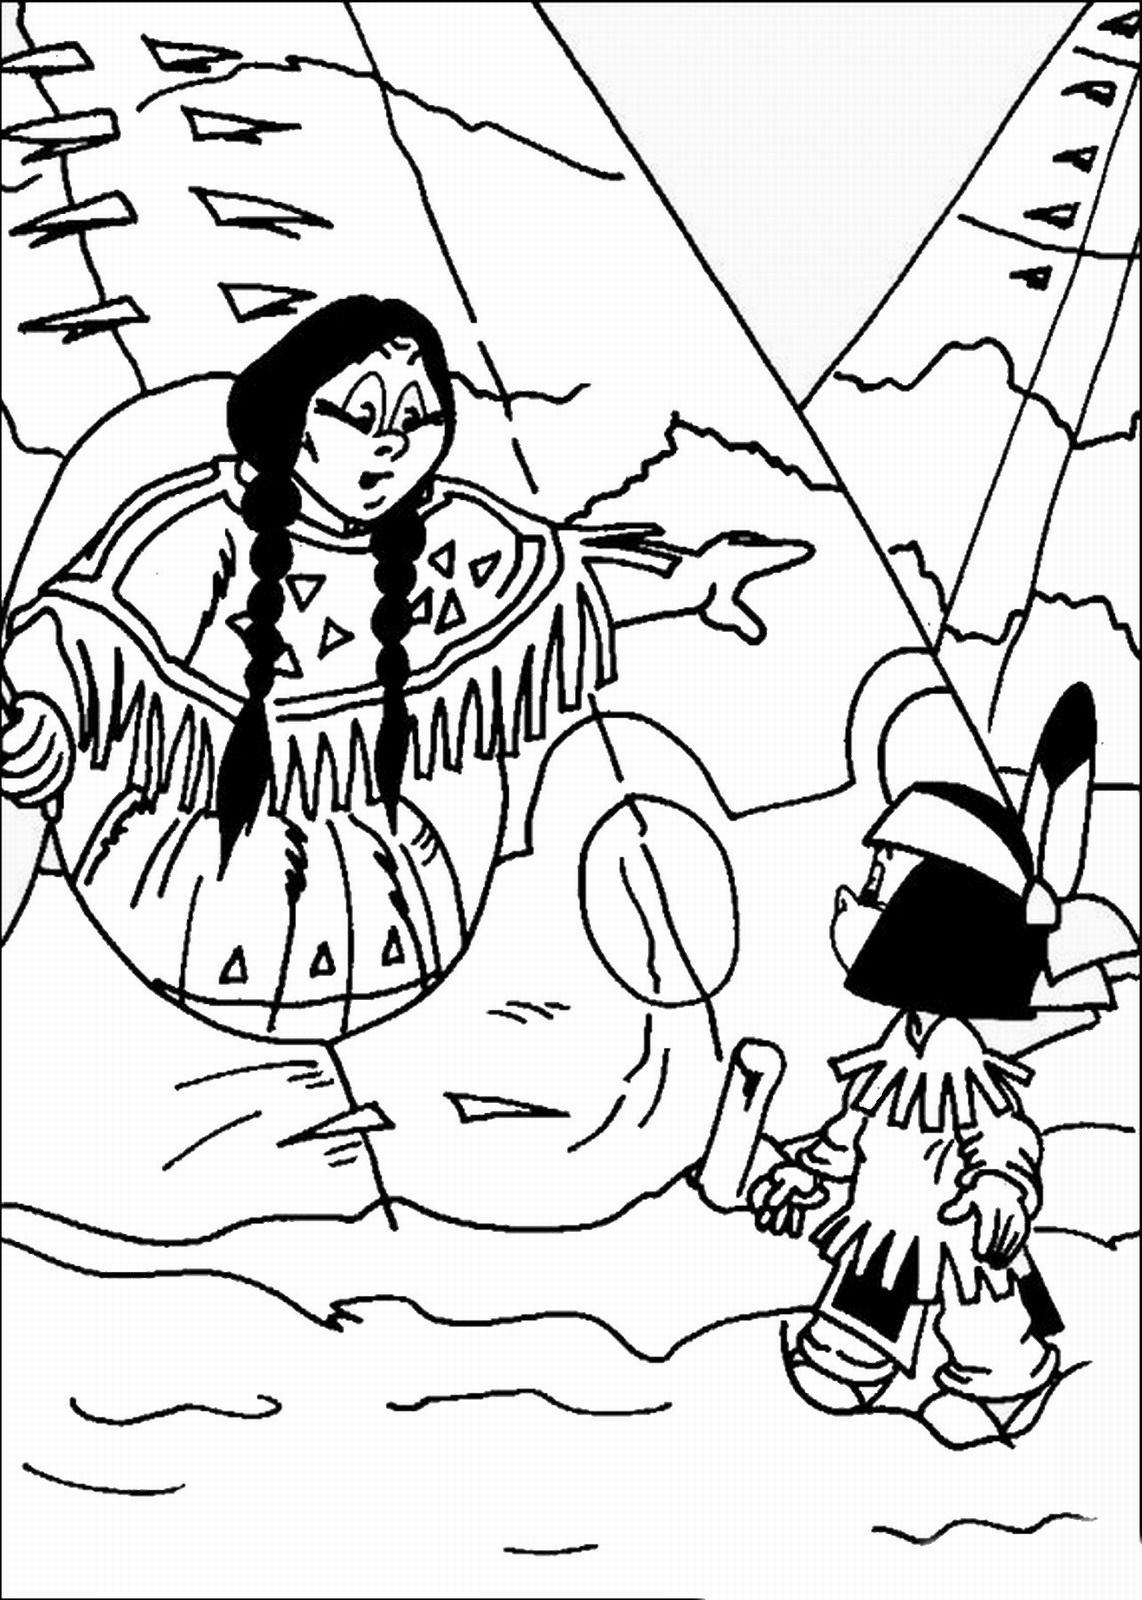 Bilder Zum Ausmalen Yakari Kleurplaat Indians Indians Culture Coloring Pictures For